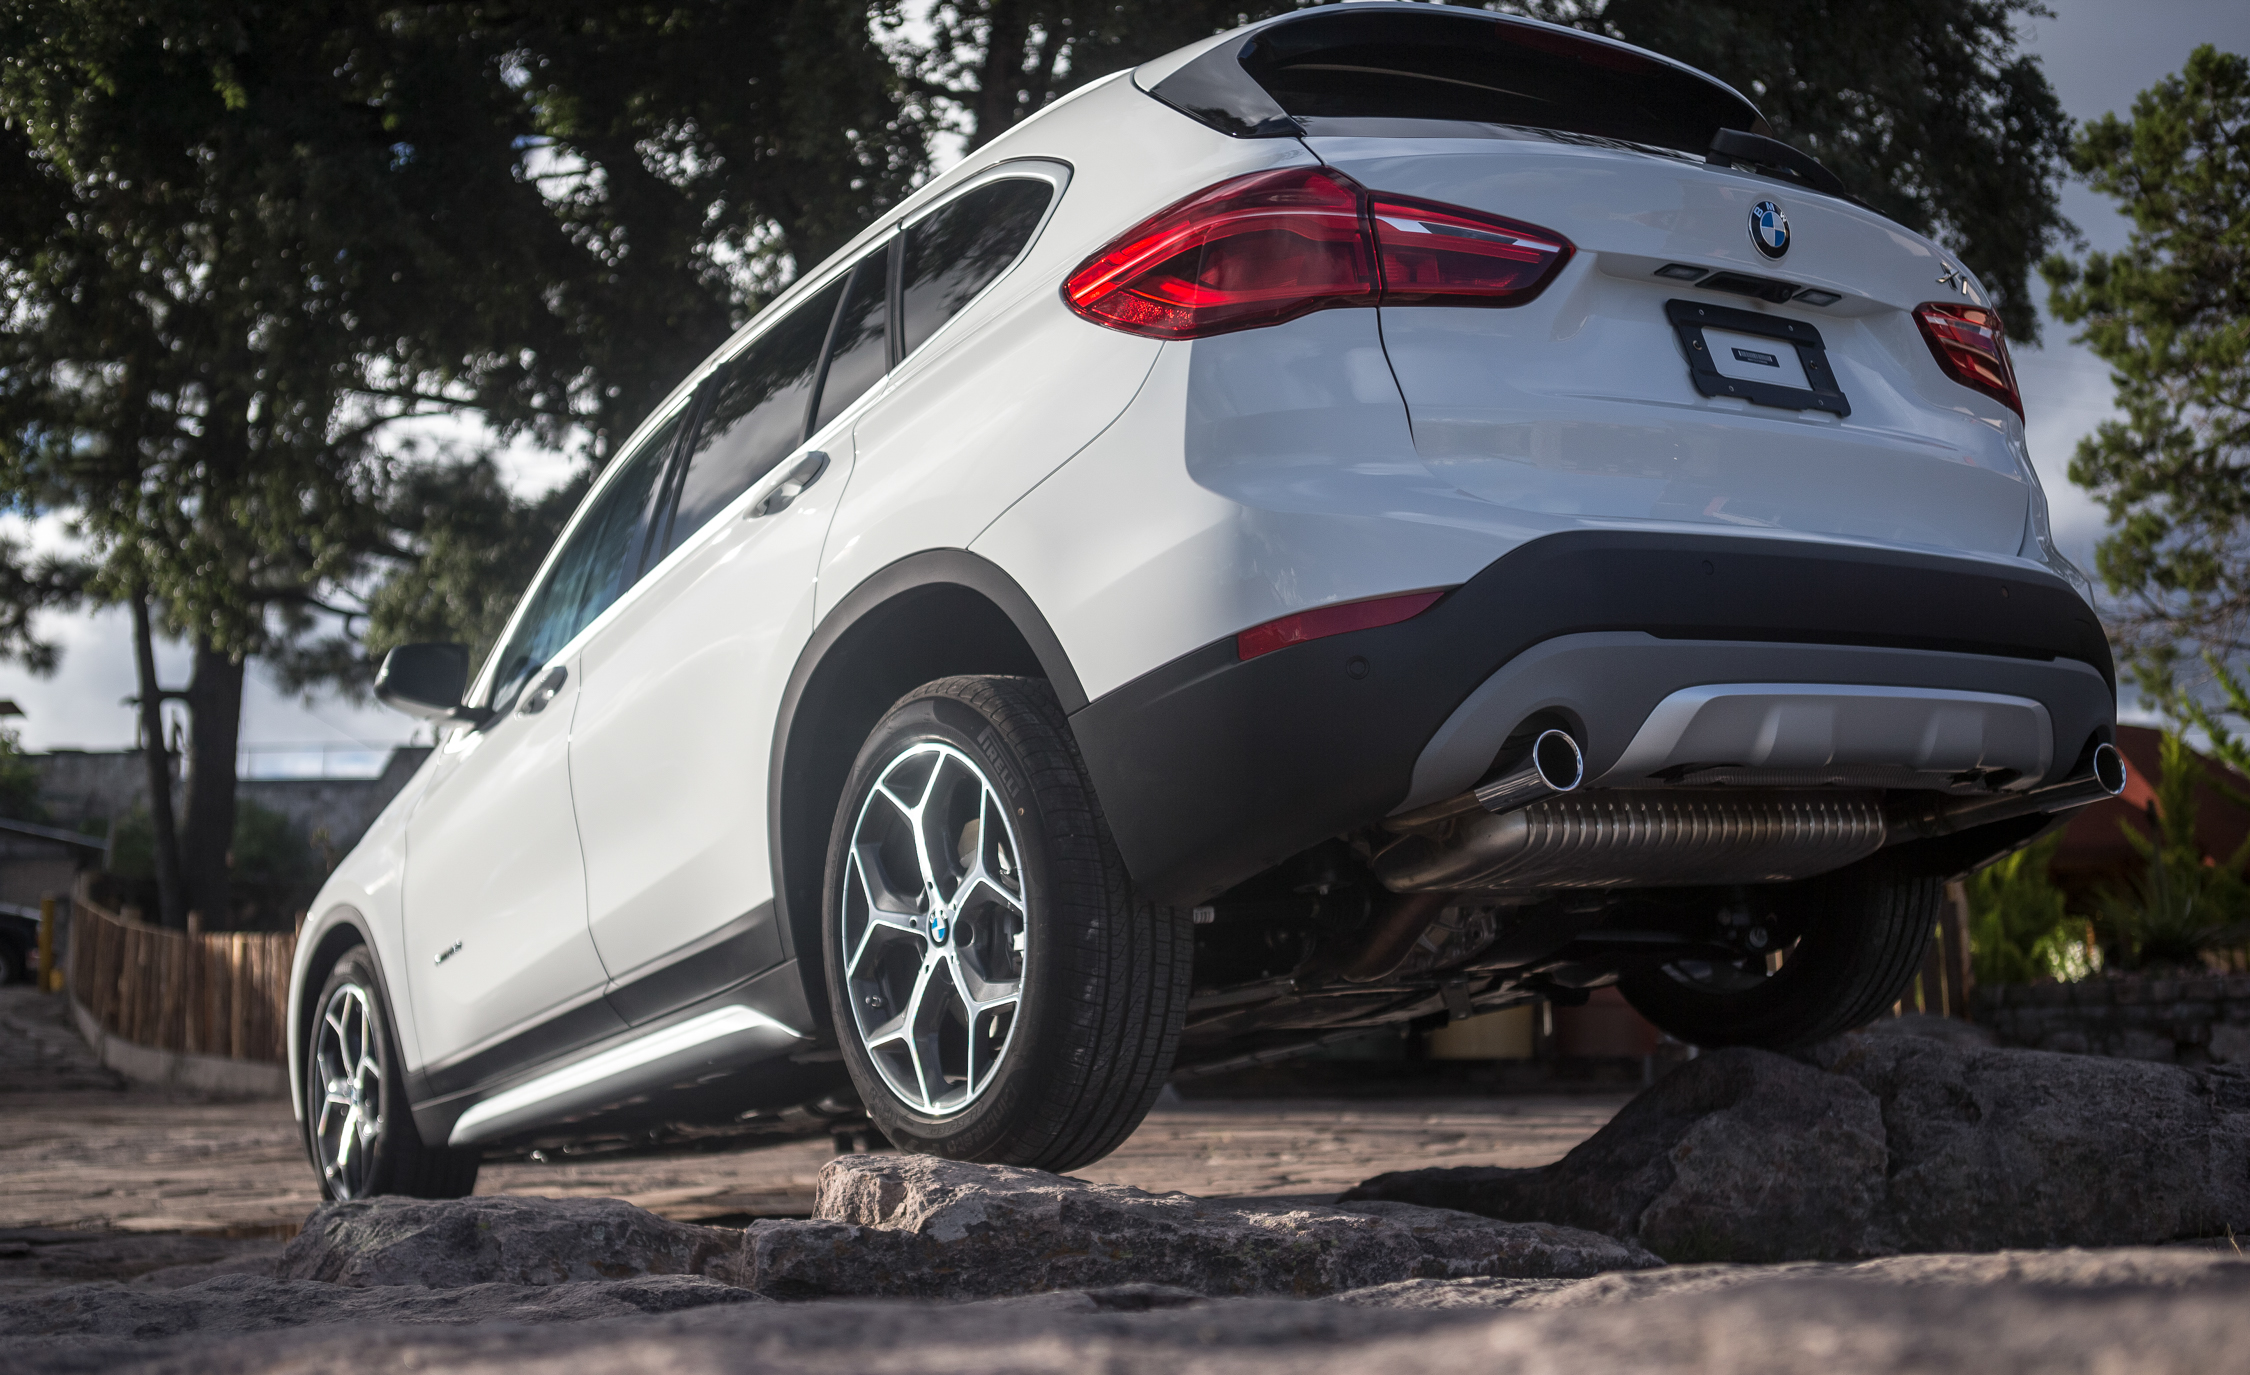 2016 BMW X1 Exterior White Metallic Rear And Side (View 32 of 36)